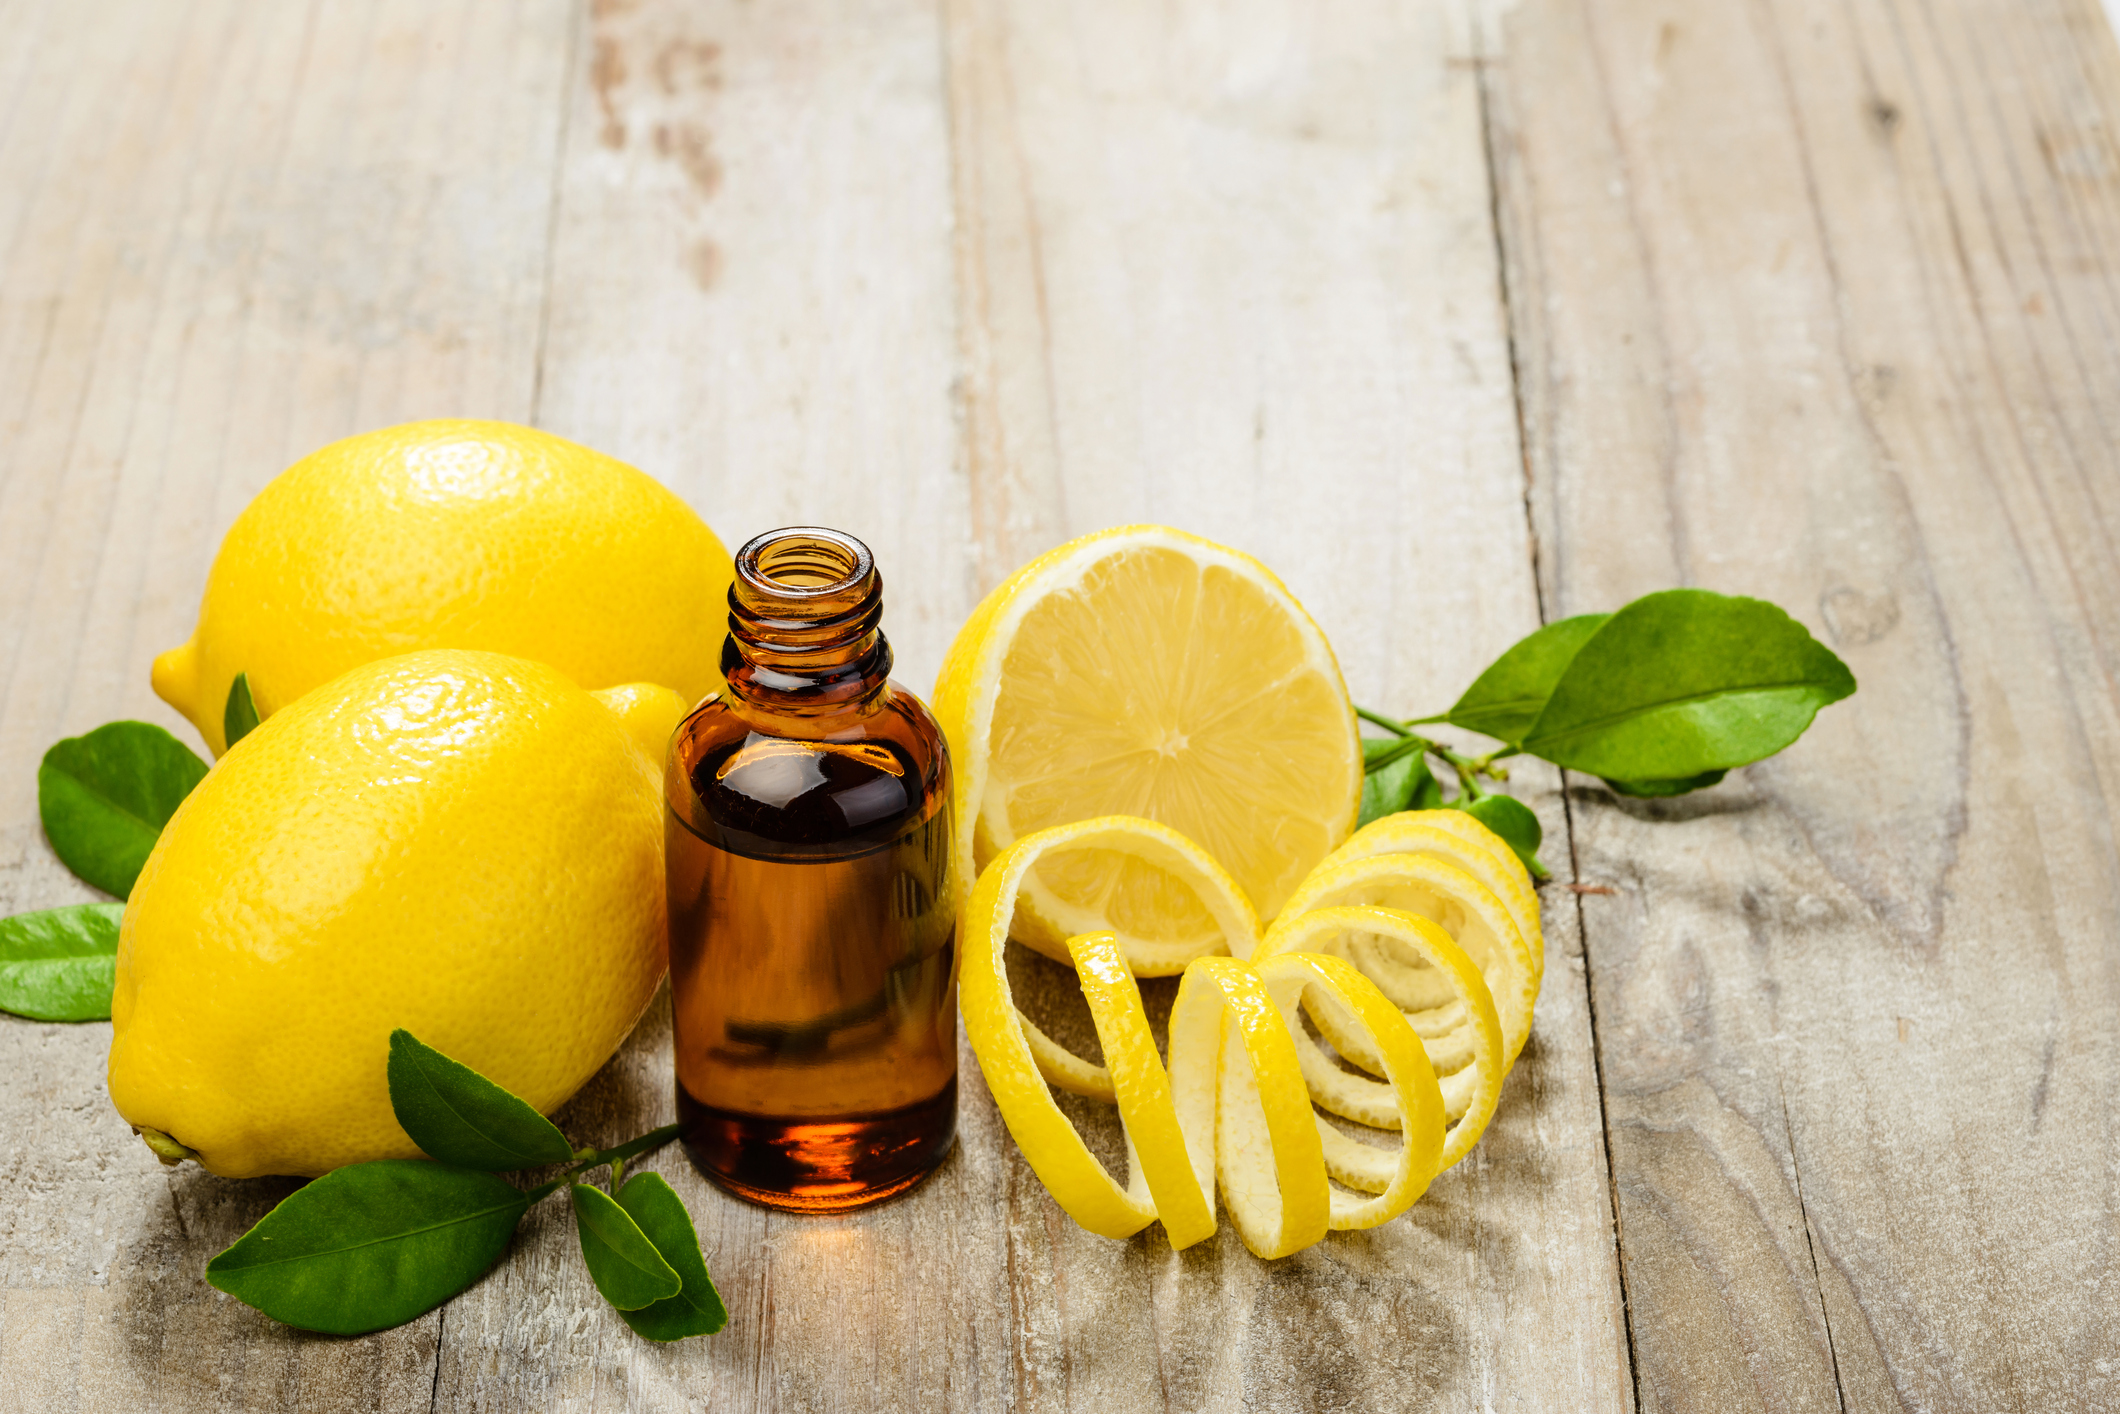 a photo of a bottle of essentia oils and lemons